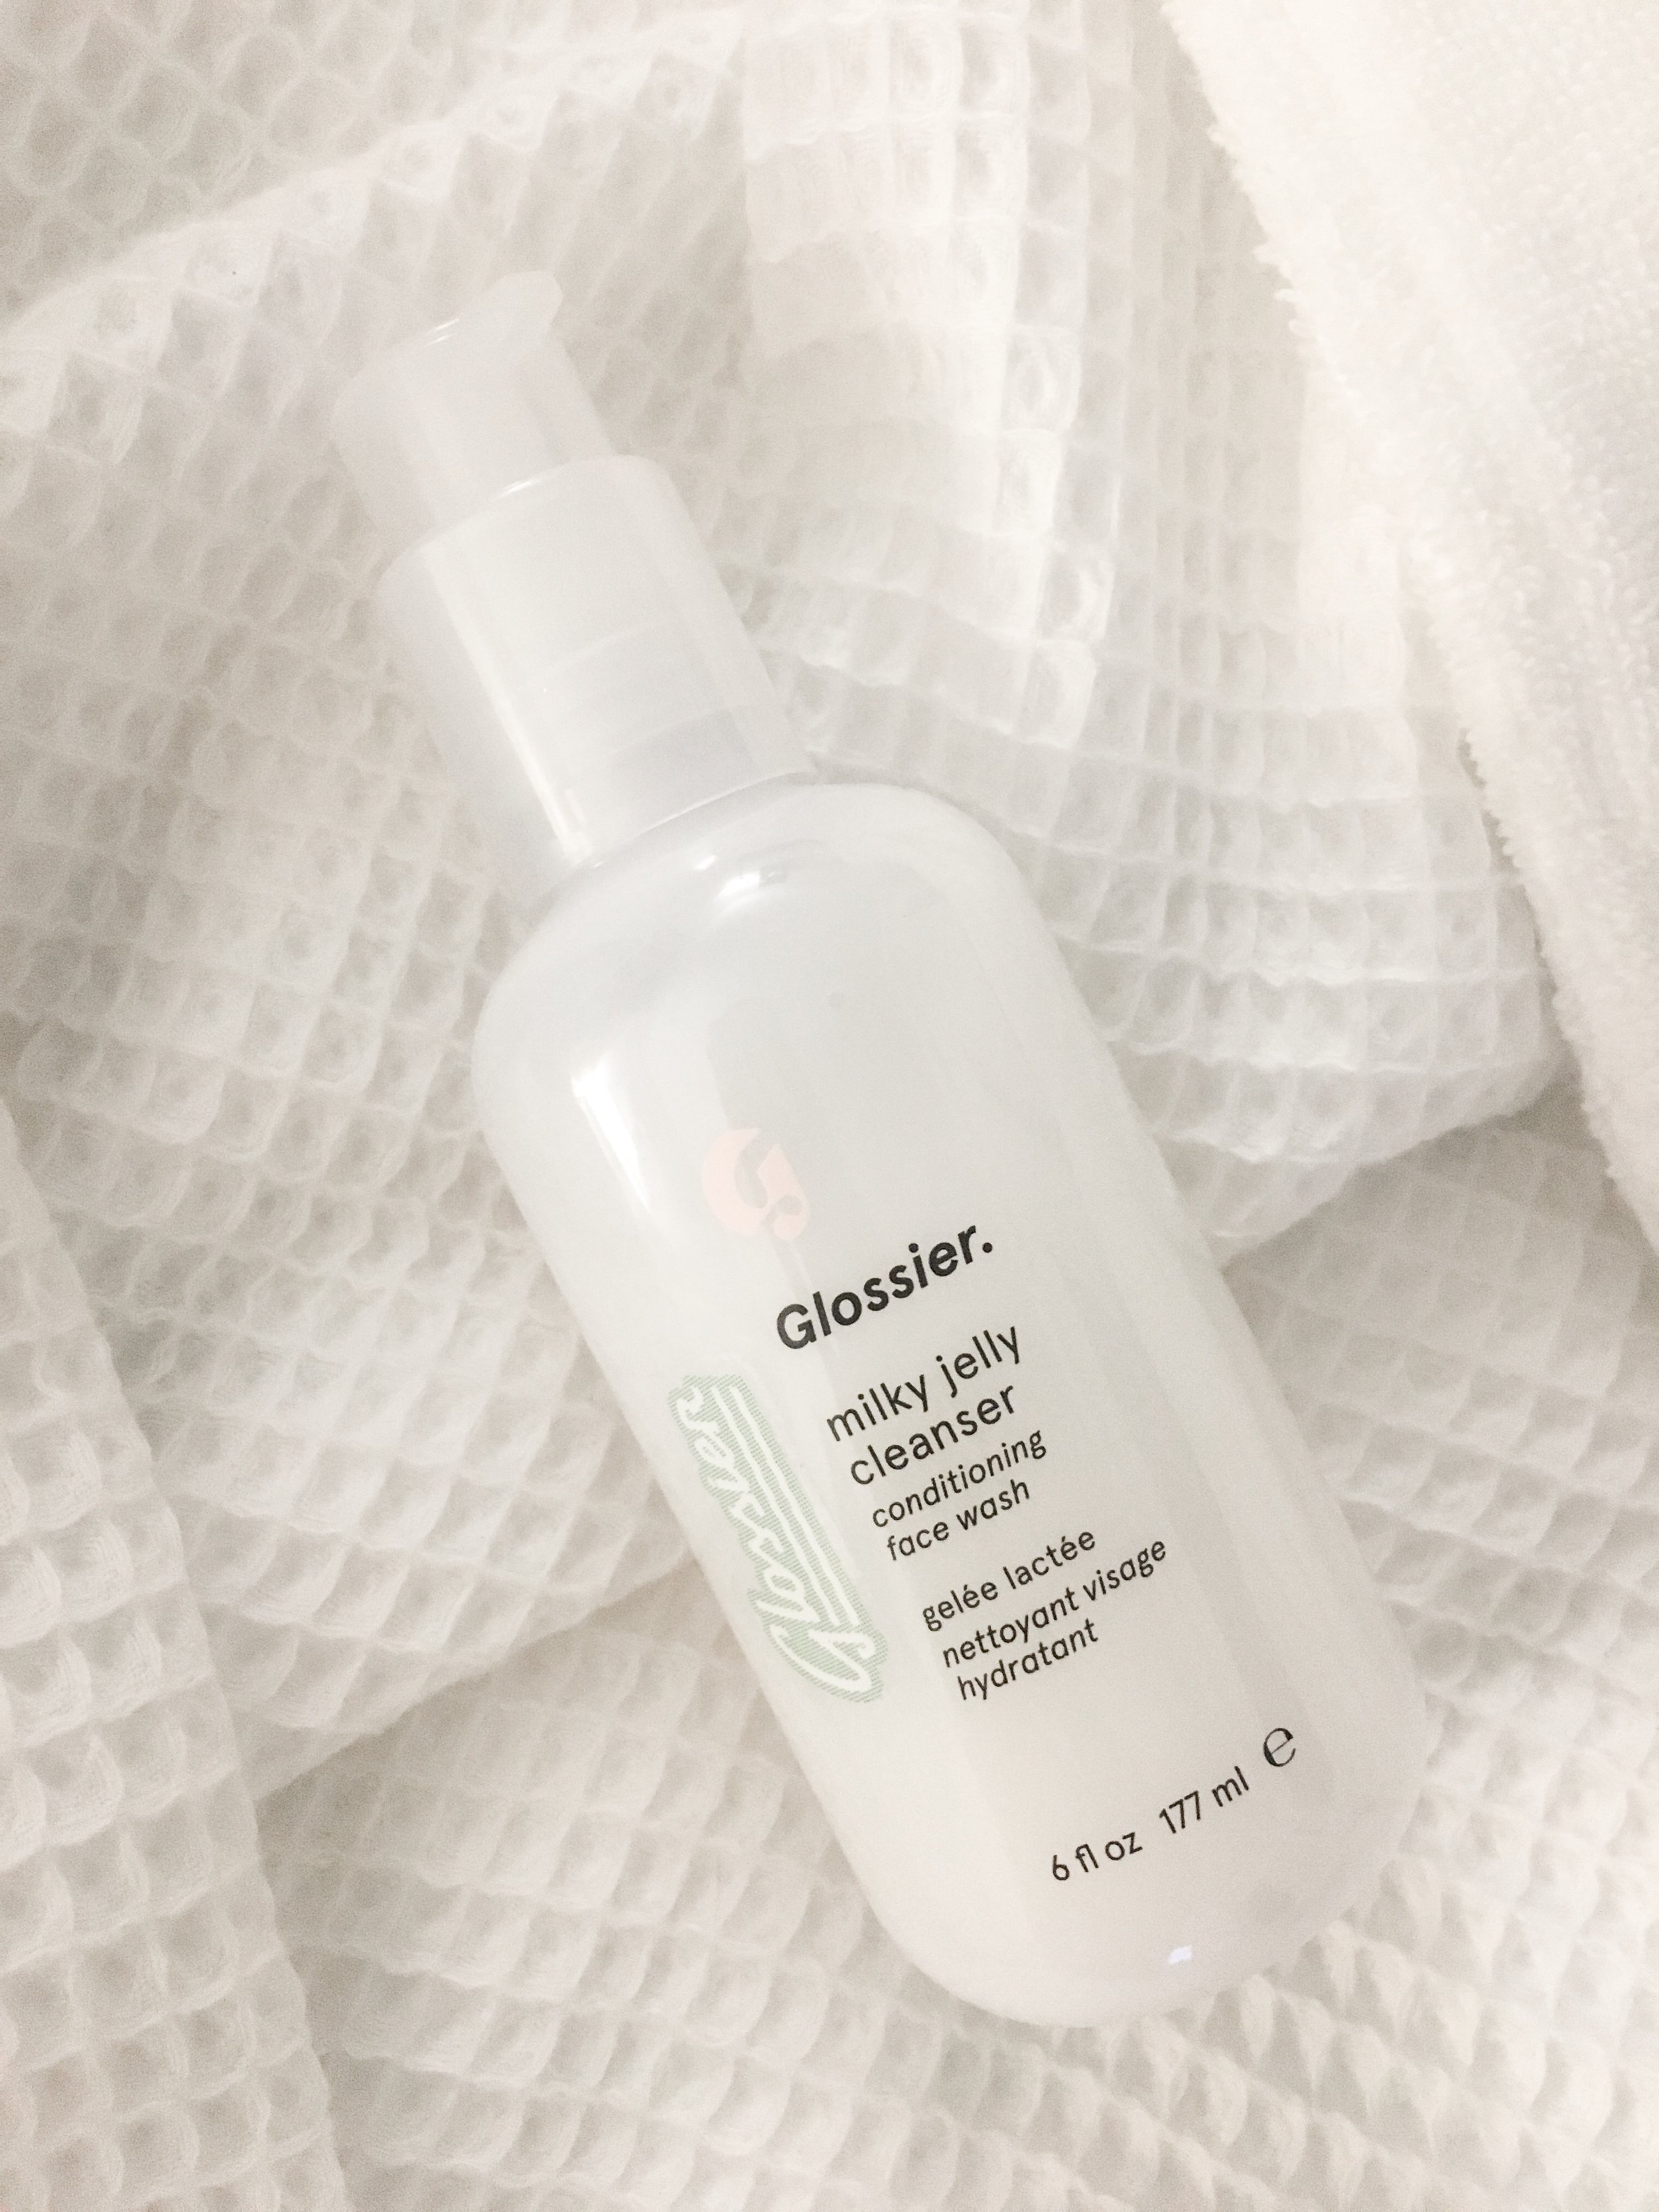 Glossier product review